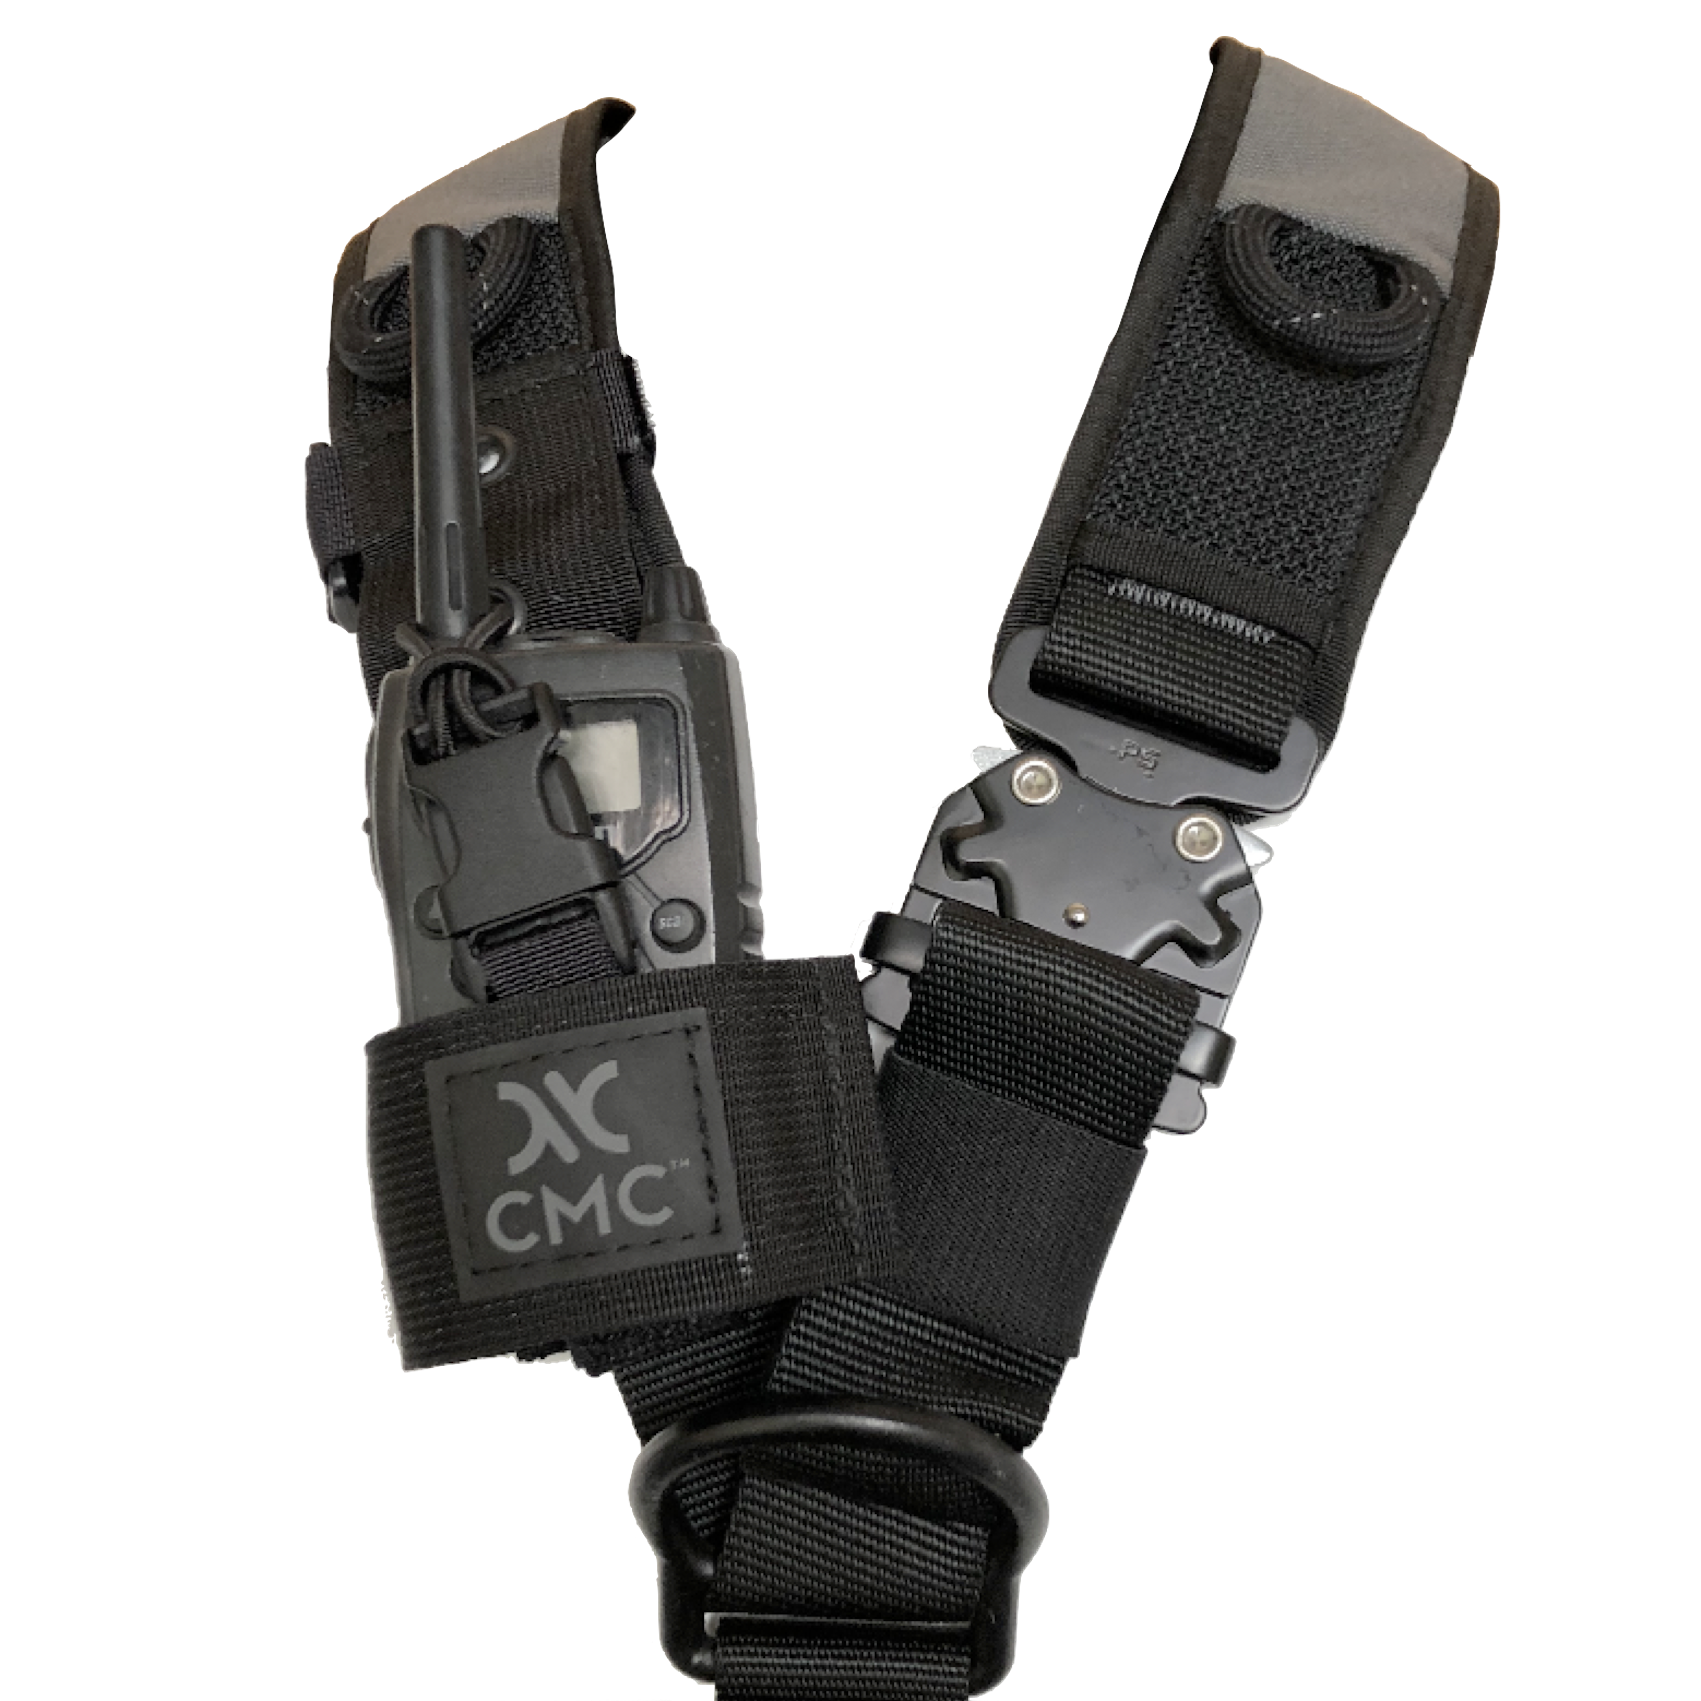 Cmc Radio Holster Safety Access Rescue. Cmc Radio Holster On Harness. Wiring. Leather Harness Radio Holster At Scoala.co